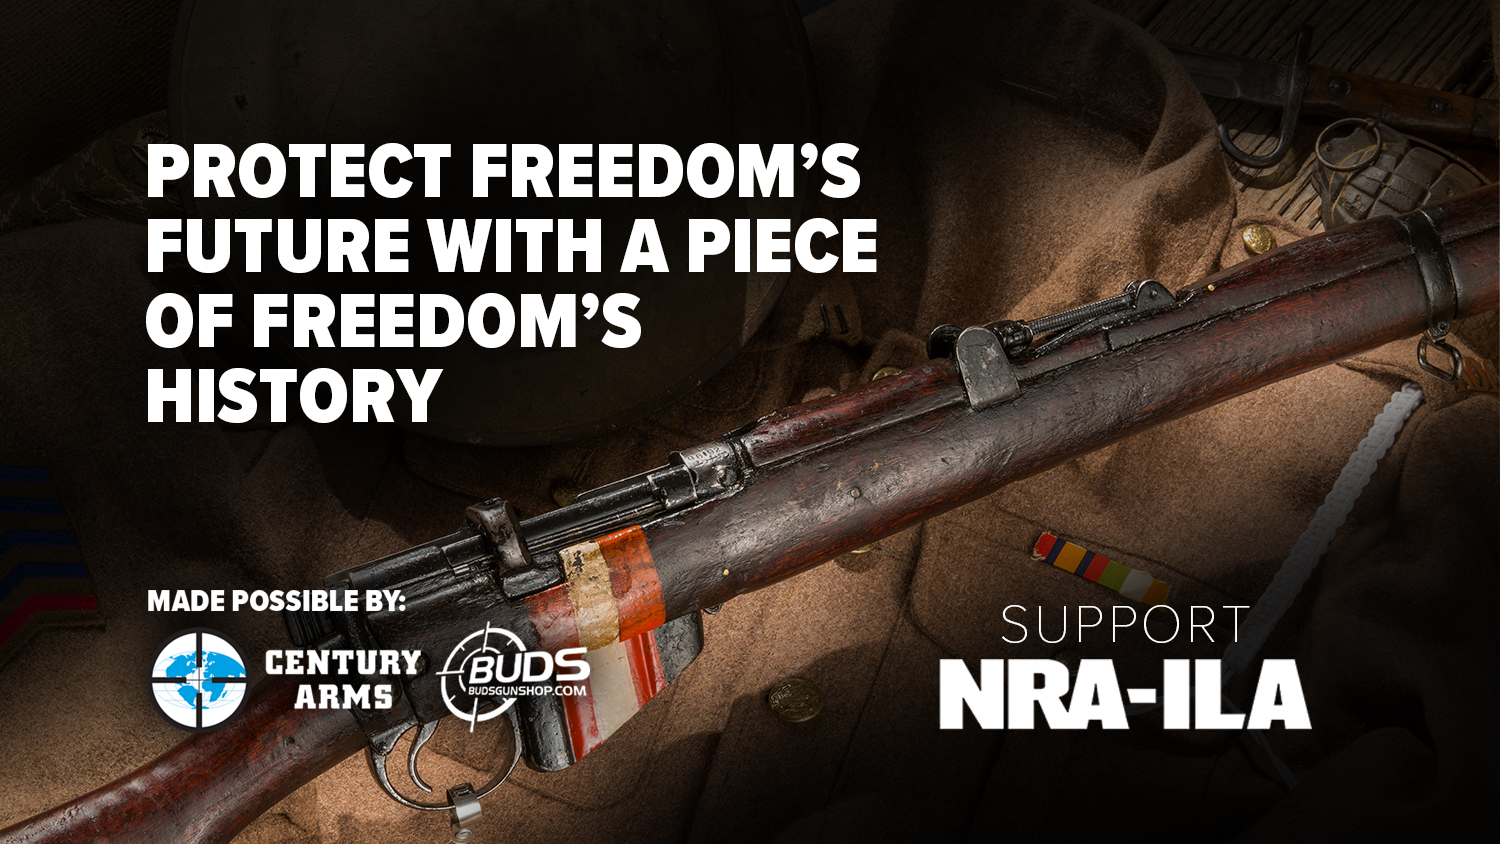 Support the NRA with a Historic Enfield Rifle